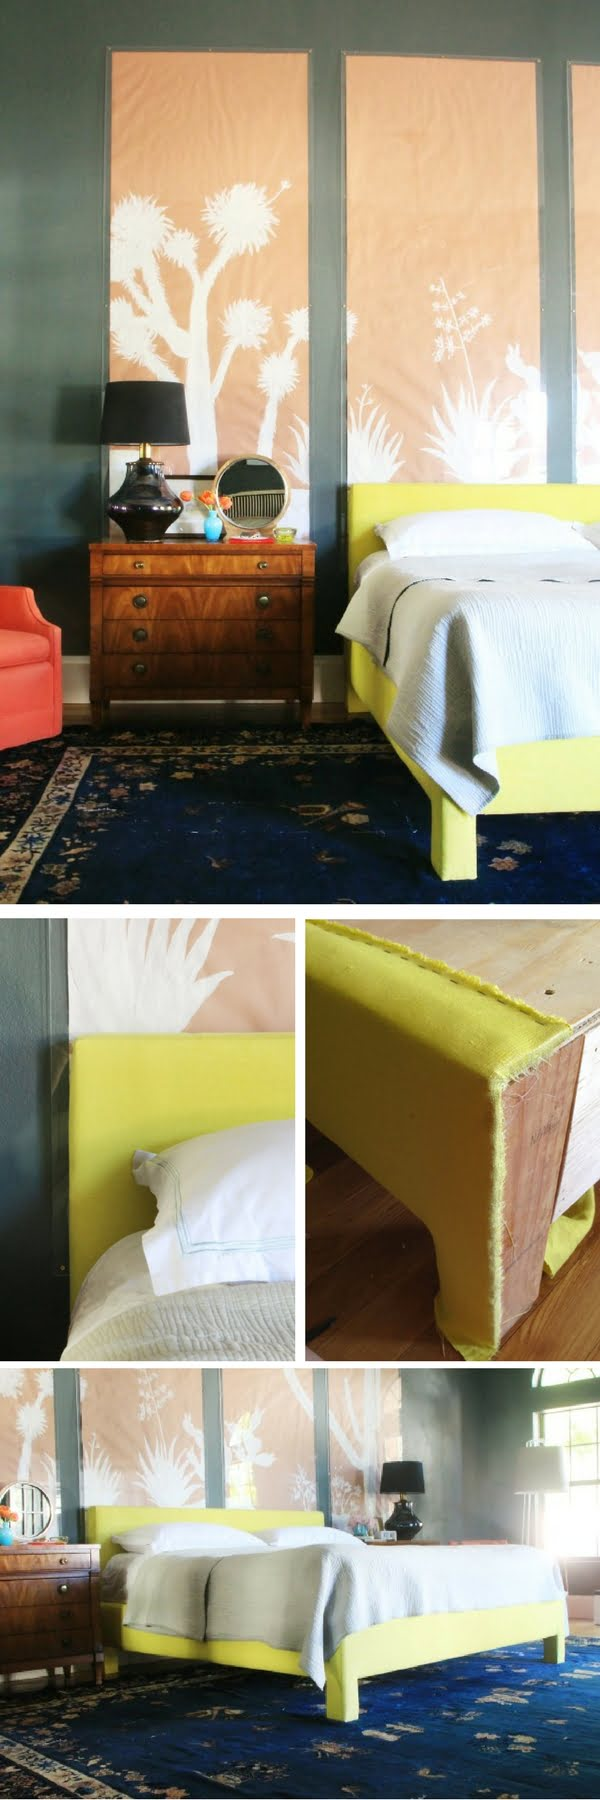 45 Easy DIY Bed Frame Projects You Can Build on a Budget - Check out the tutorial on how to build a DIY modern upholstered platform bed